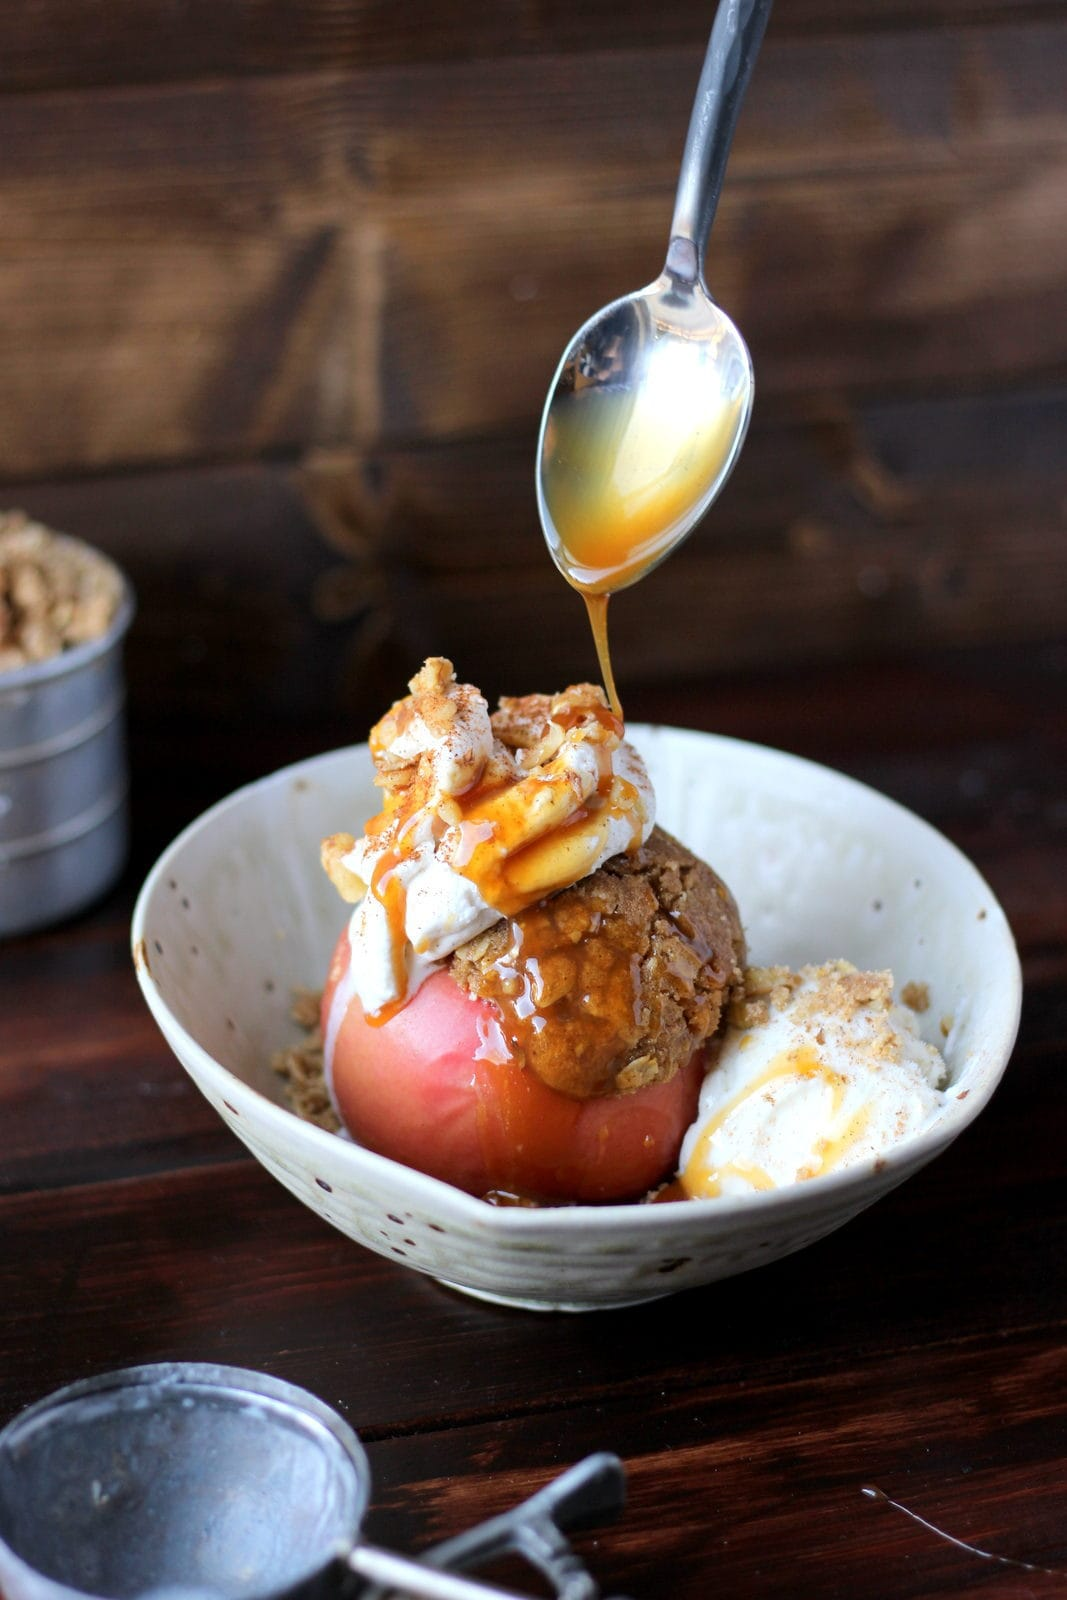 Stuffed Apples + Cardamom Whipped Cream and Vanilla Bean Ice Cream topped with Walnuts and Caramel Sauce. The perfect dessert for fall! Includes instructions on how to make homemade whipped cream! thewoodenskillet.com #foodphotography #foodstyling